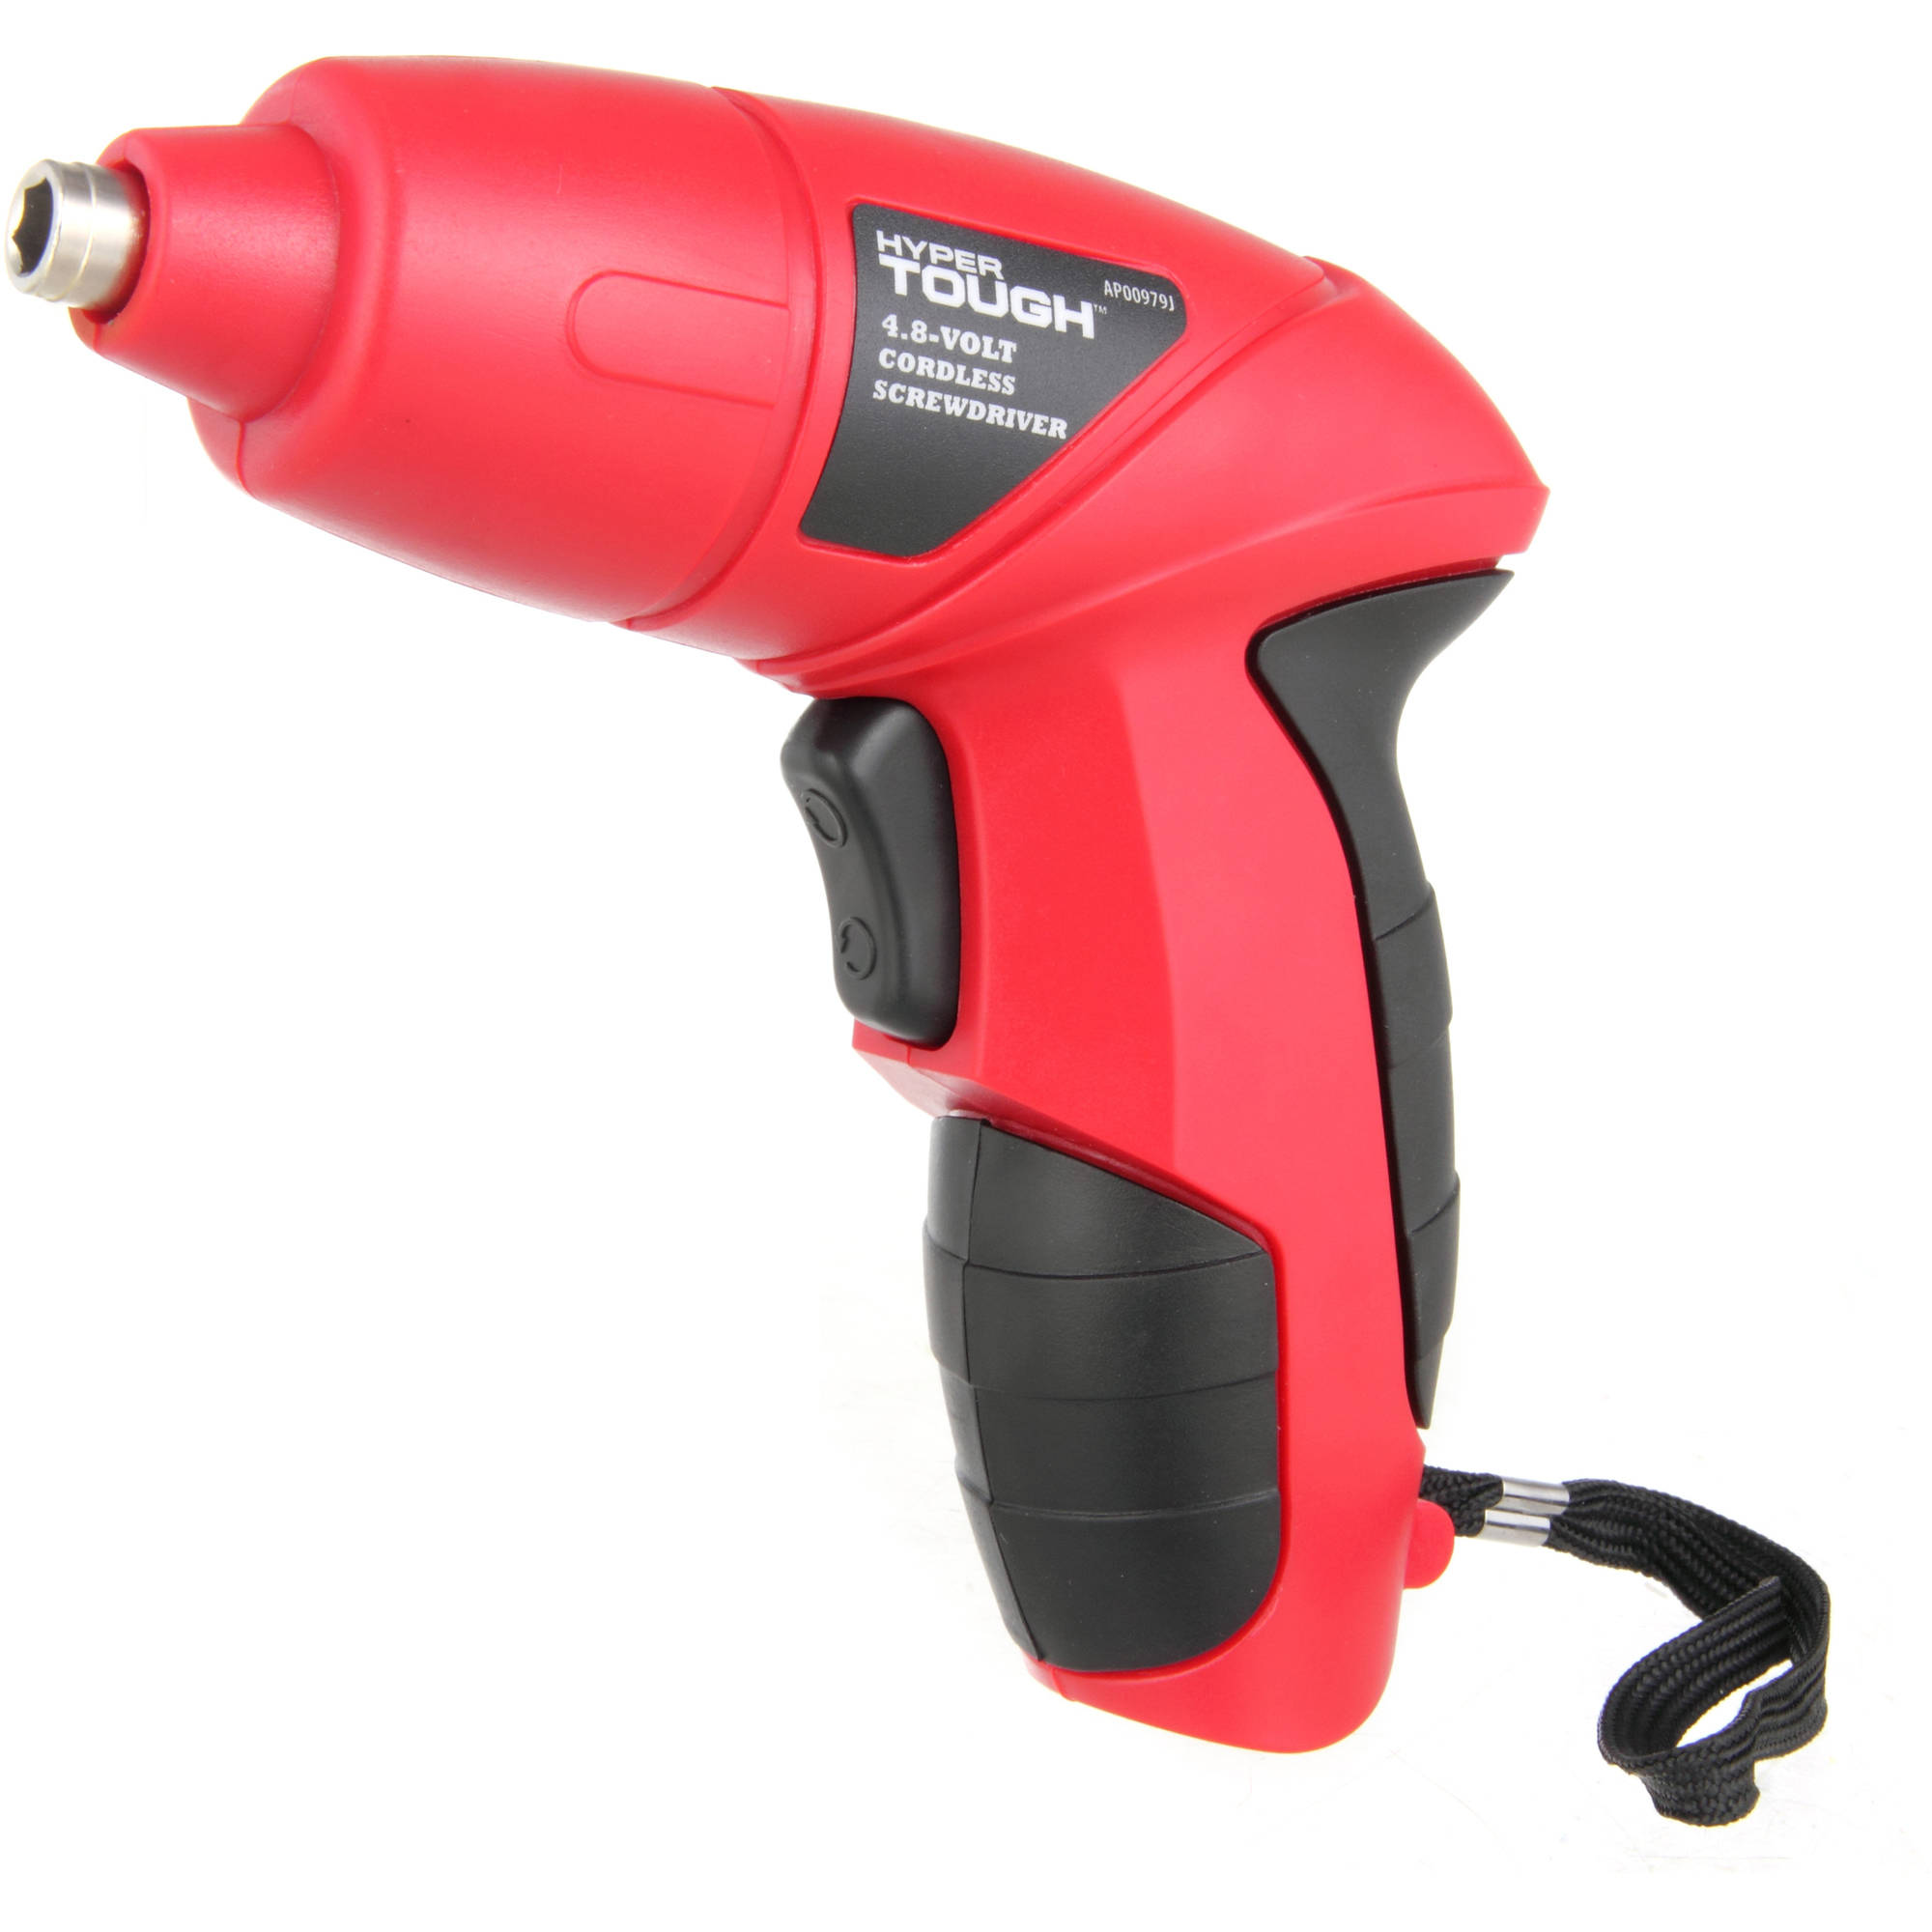 RED Electric Screwdriver 800B for cellphones or small devices Please read